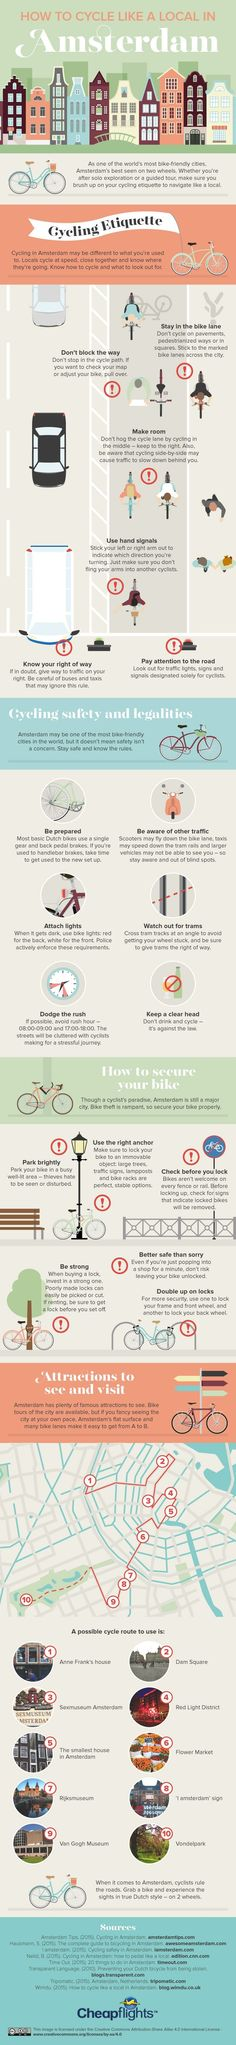 How to Cycle Like a Local in #Amsterdam - Do you fancy an infographic?  There are a lot of them online, but if you want your own please visit http://www.linfografico.com/prezzi/  Online girano molte infografiche, se ne vuoi realizzare una tutta tua visita http://www.linfografico.com/prezzi/